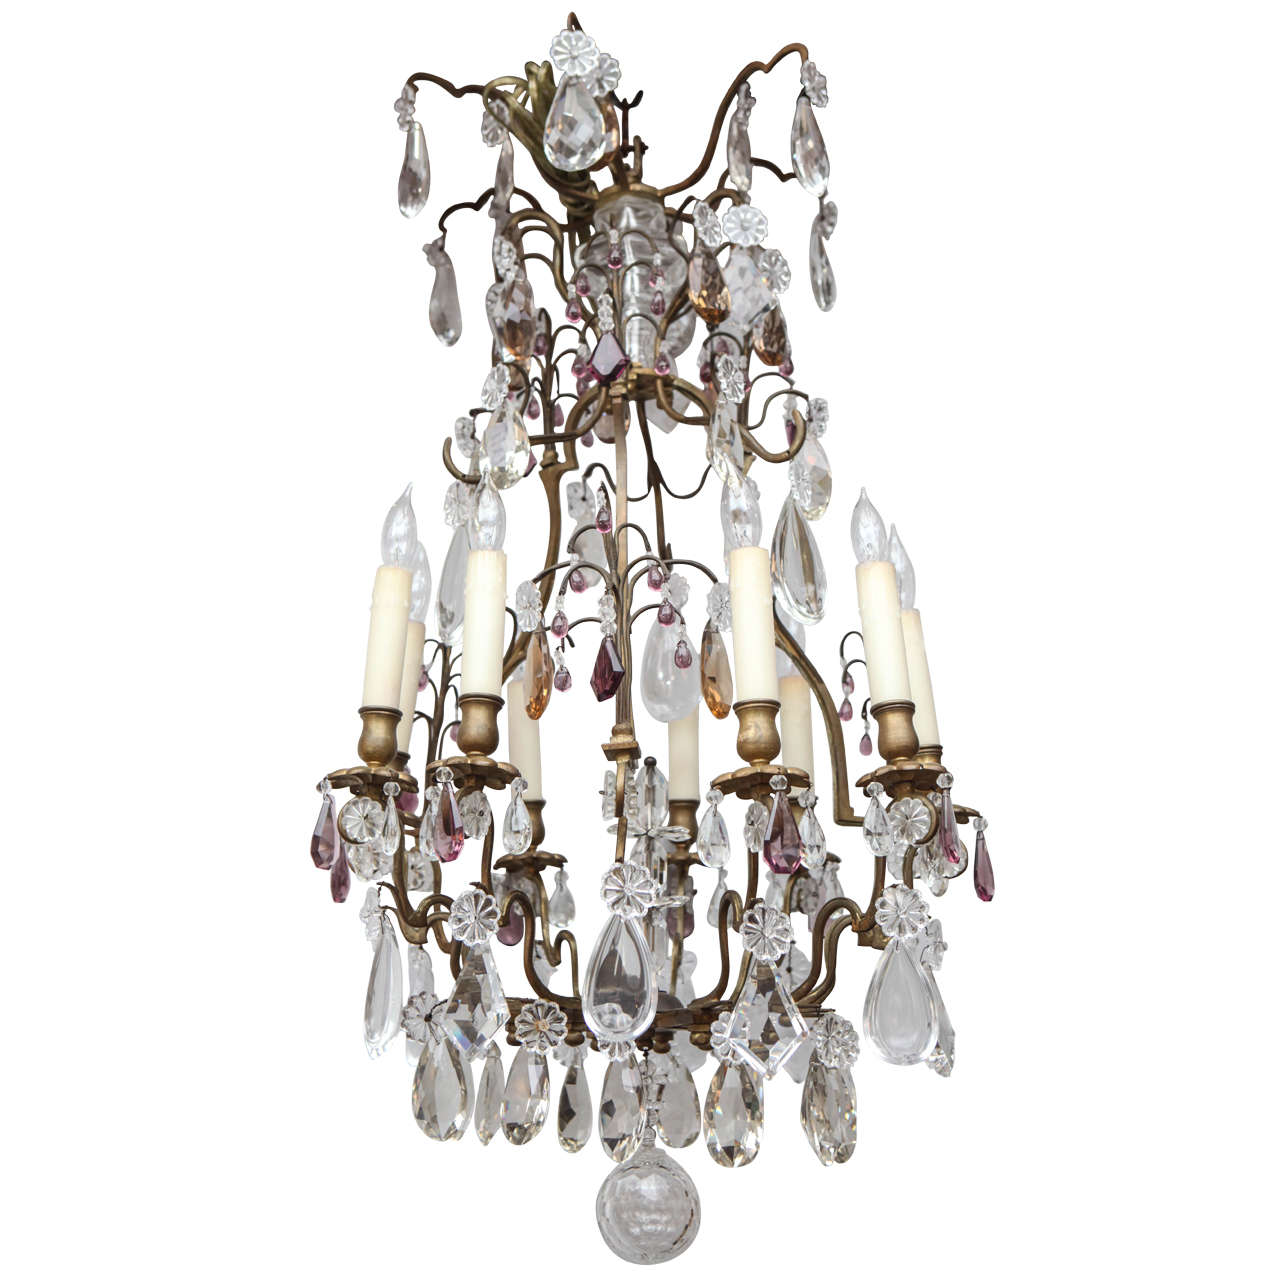 19th Century French Louis XV Style Bronze Chandelier with Crystal and Amethyst